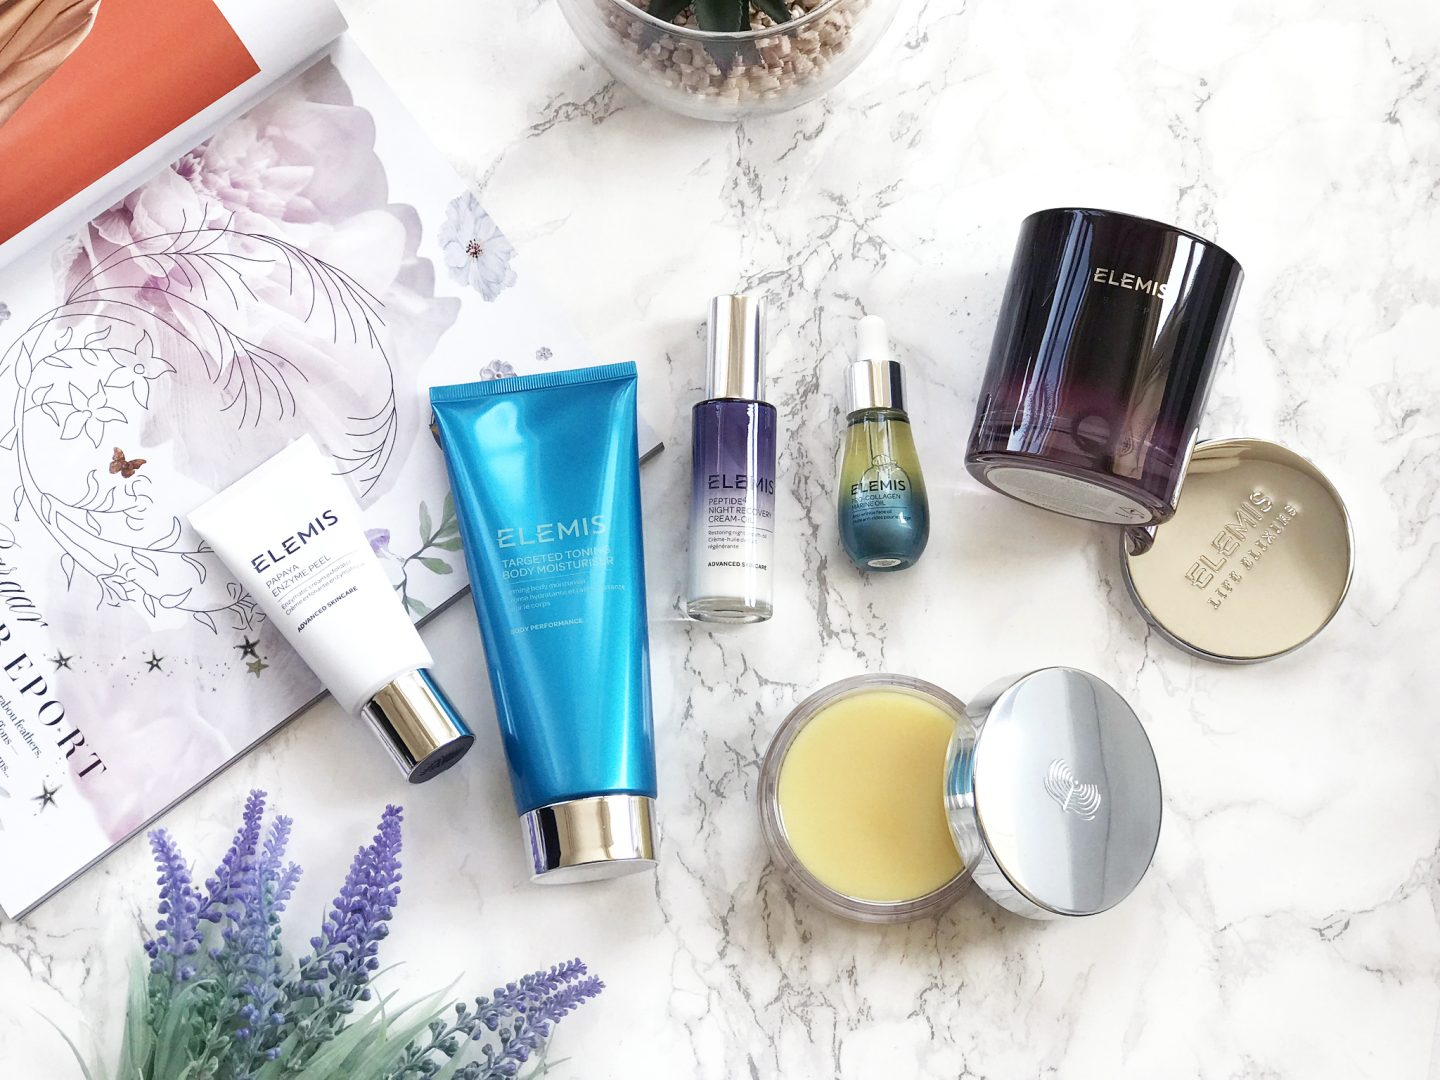 Elemis top selling products